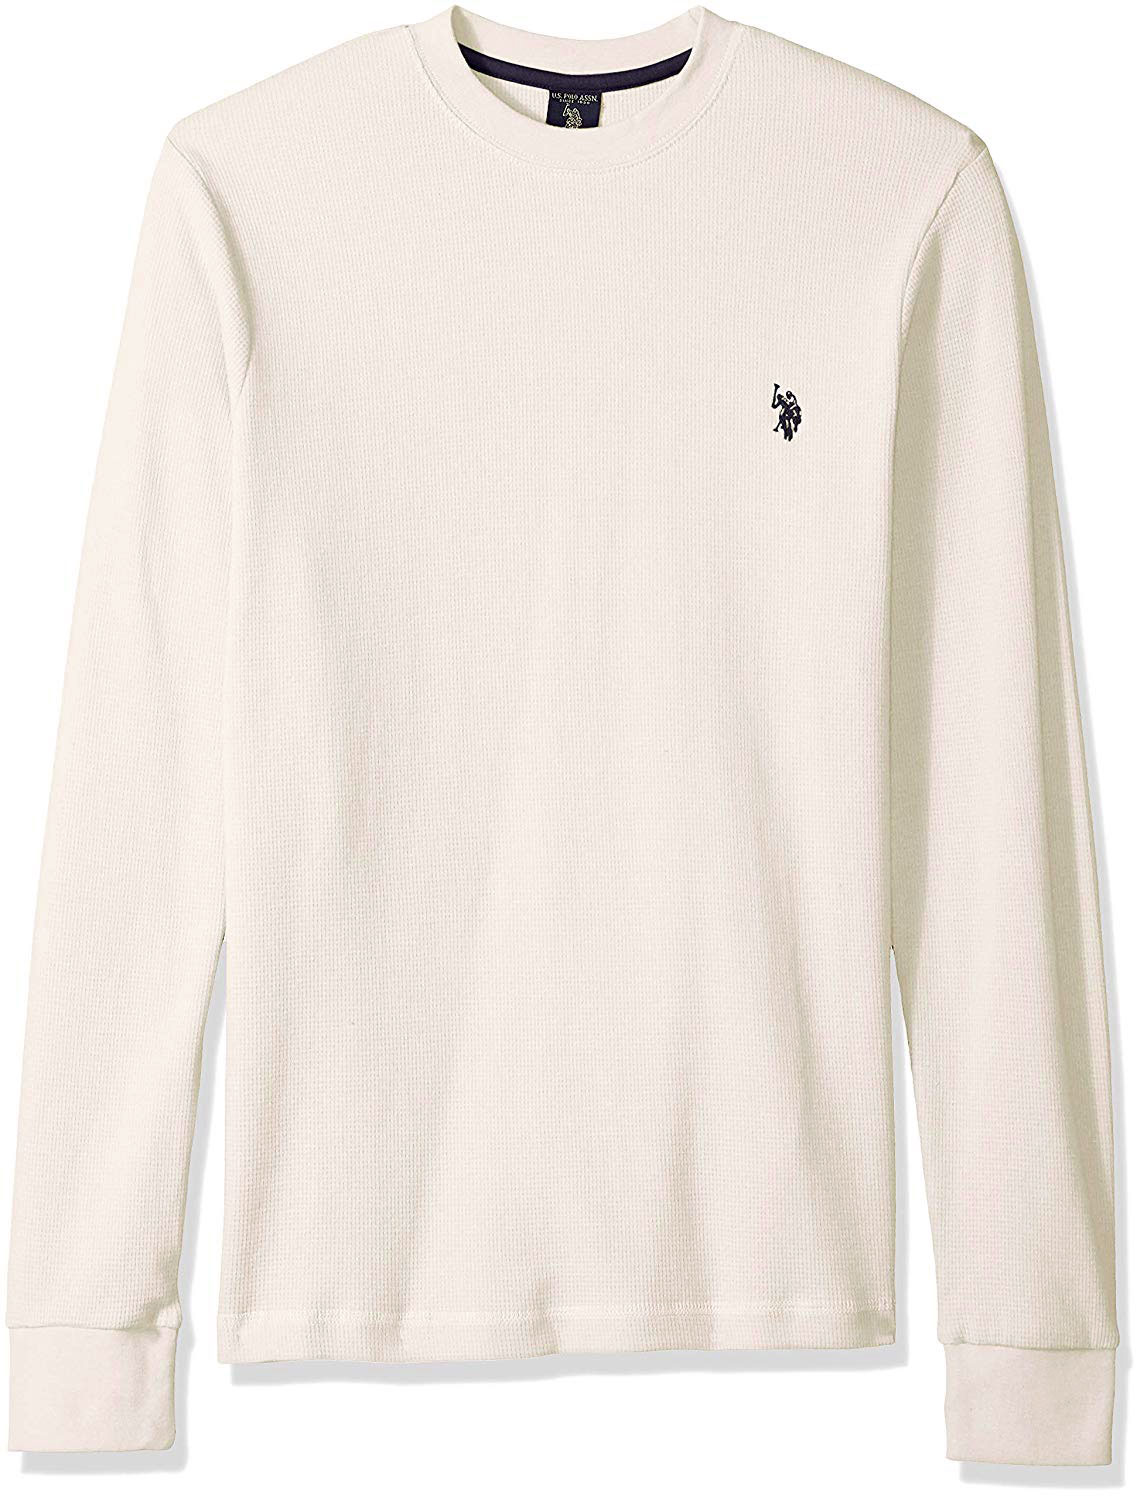 Mens Long Sleeve Crew Neck Solid Thermal Shirt U.S Polo Assn